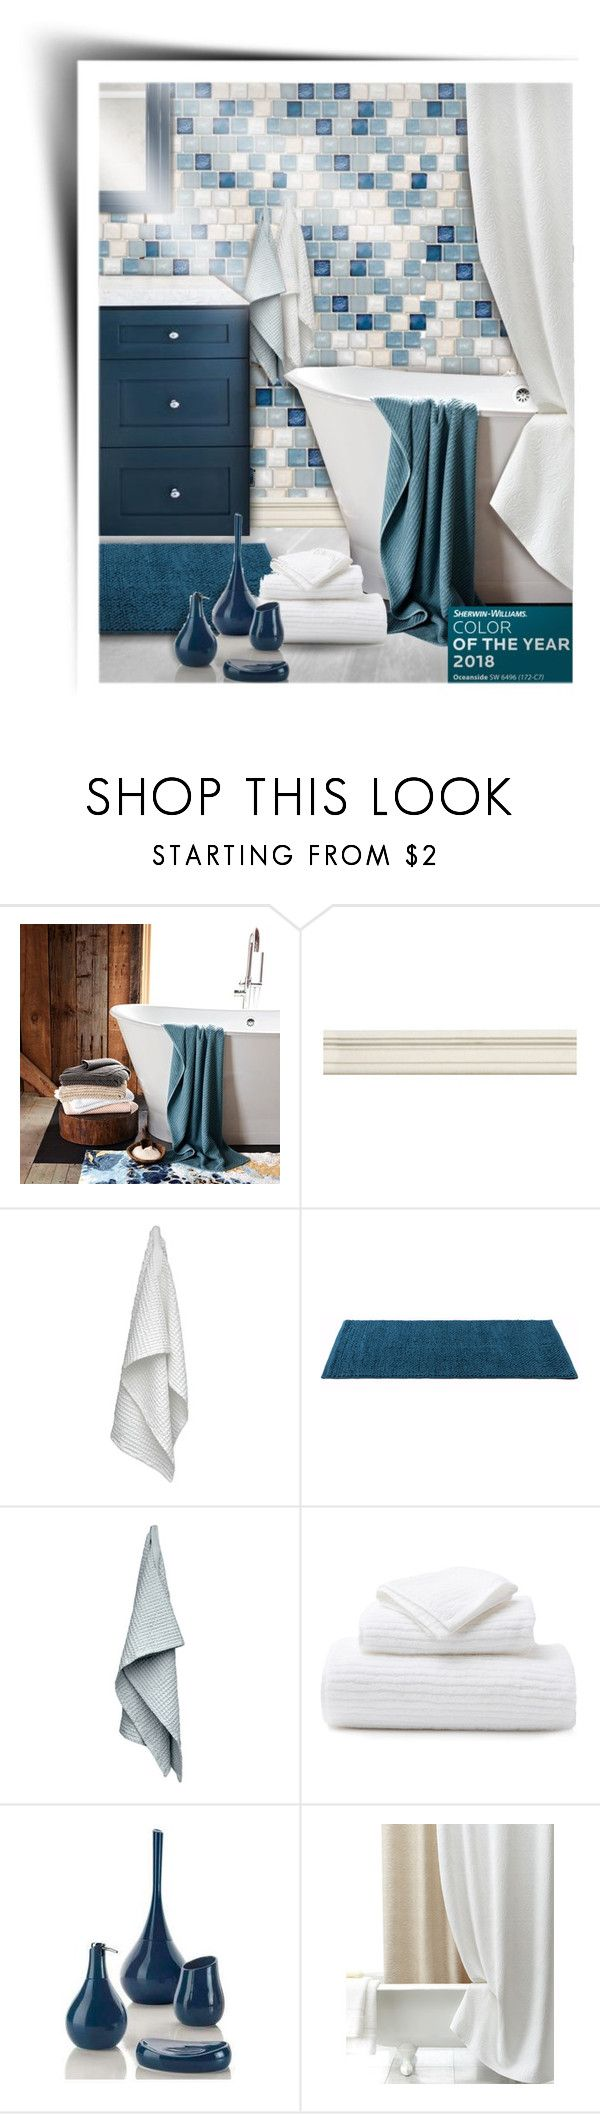 """""""Oceanside Bathroom"""" by kiki-bi ❤ liked on Polyvore featuring interior, interiors, interior design, home, home decor, interior decorating, Abyss, The Organic Company, Pigeon & Poodle and Nameek's"""